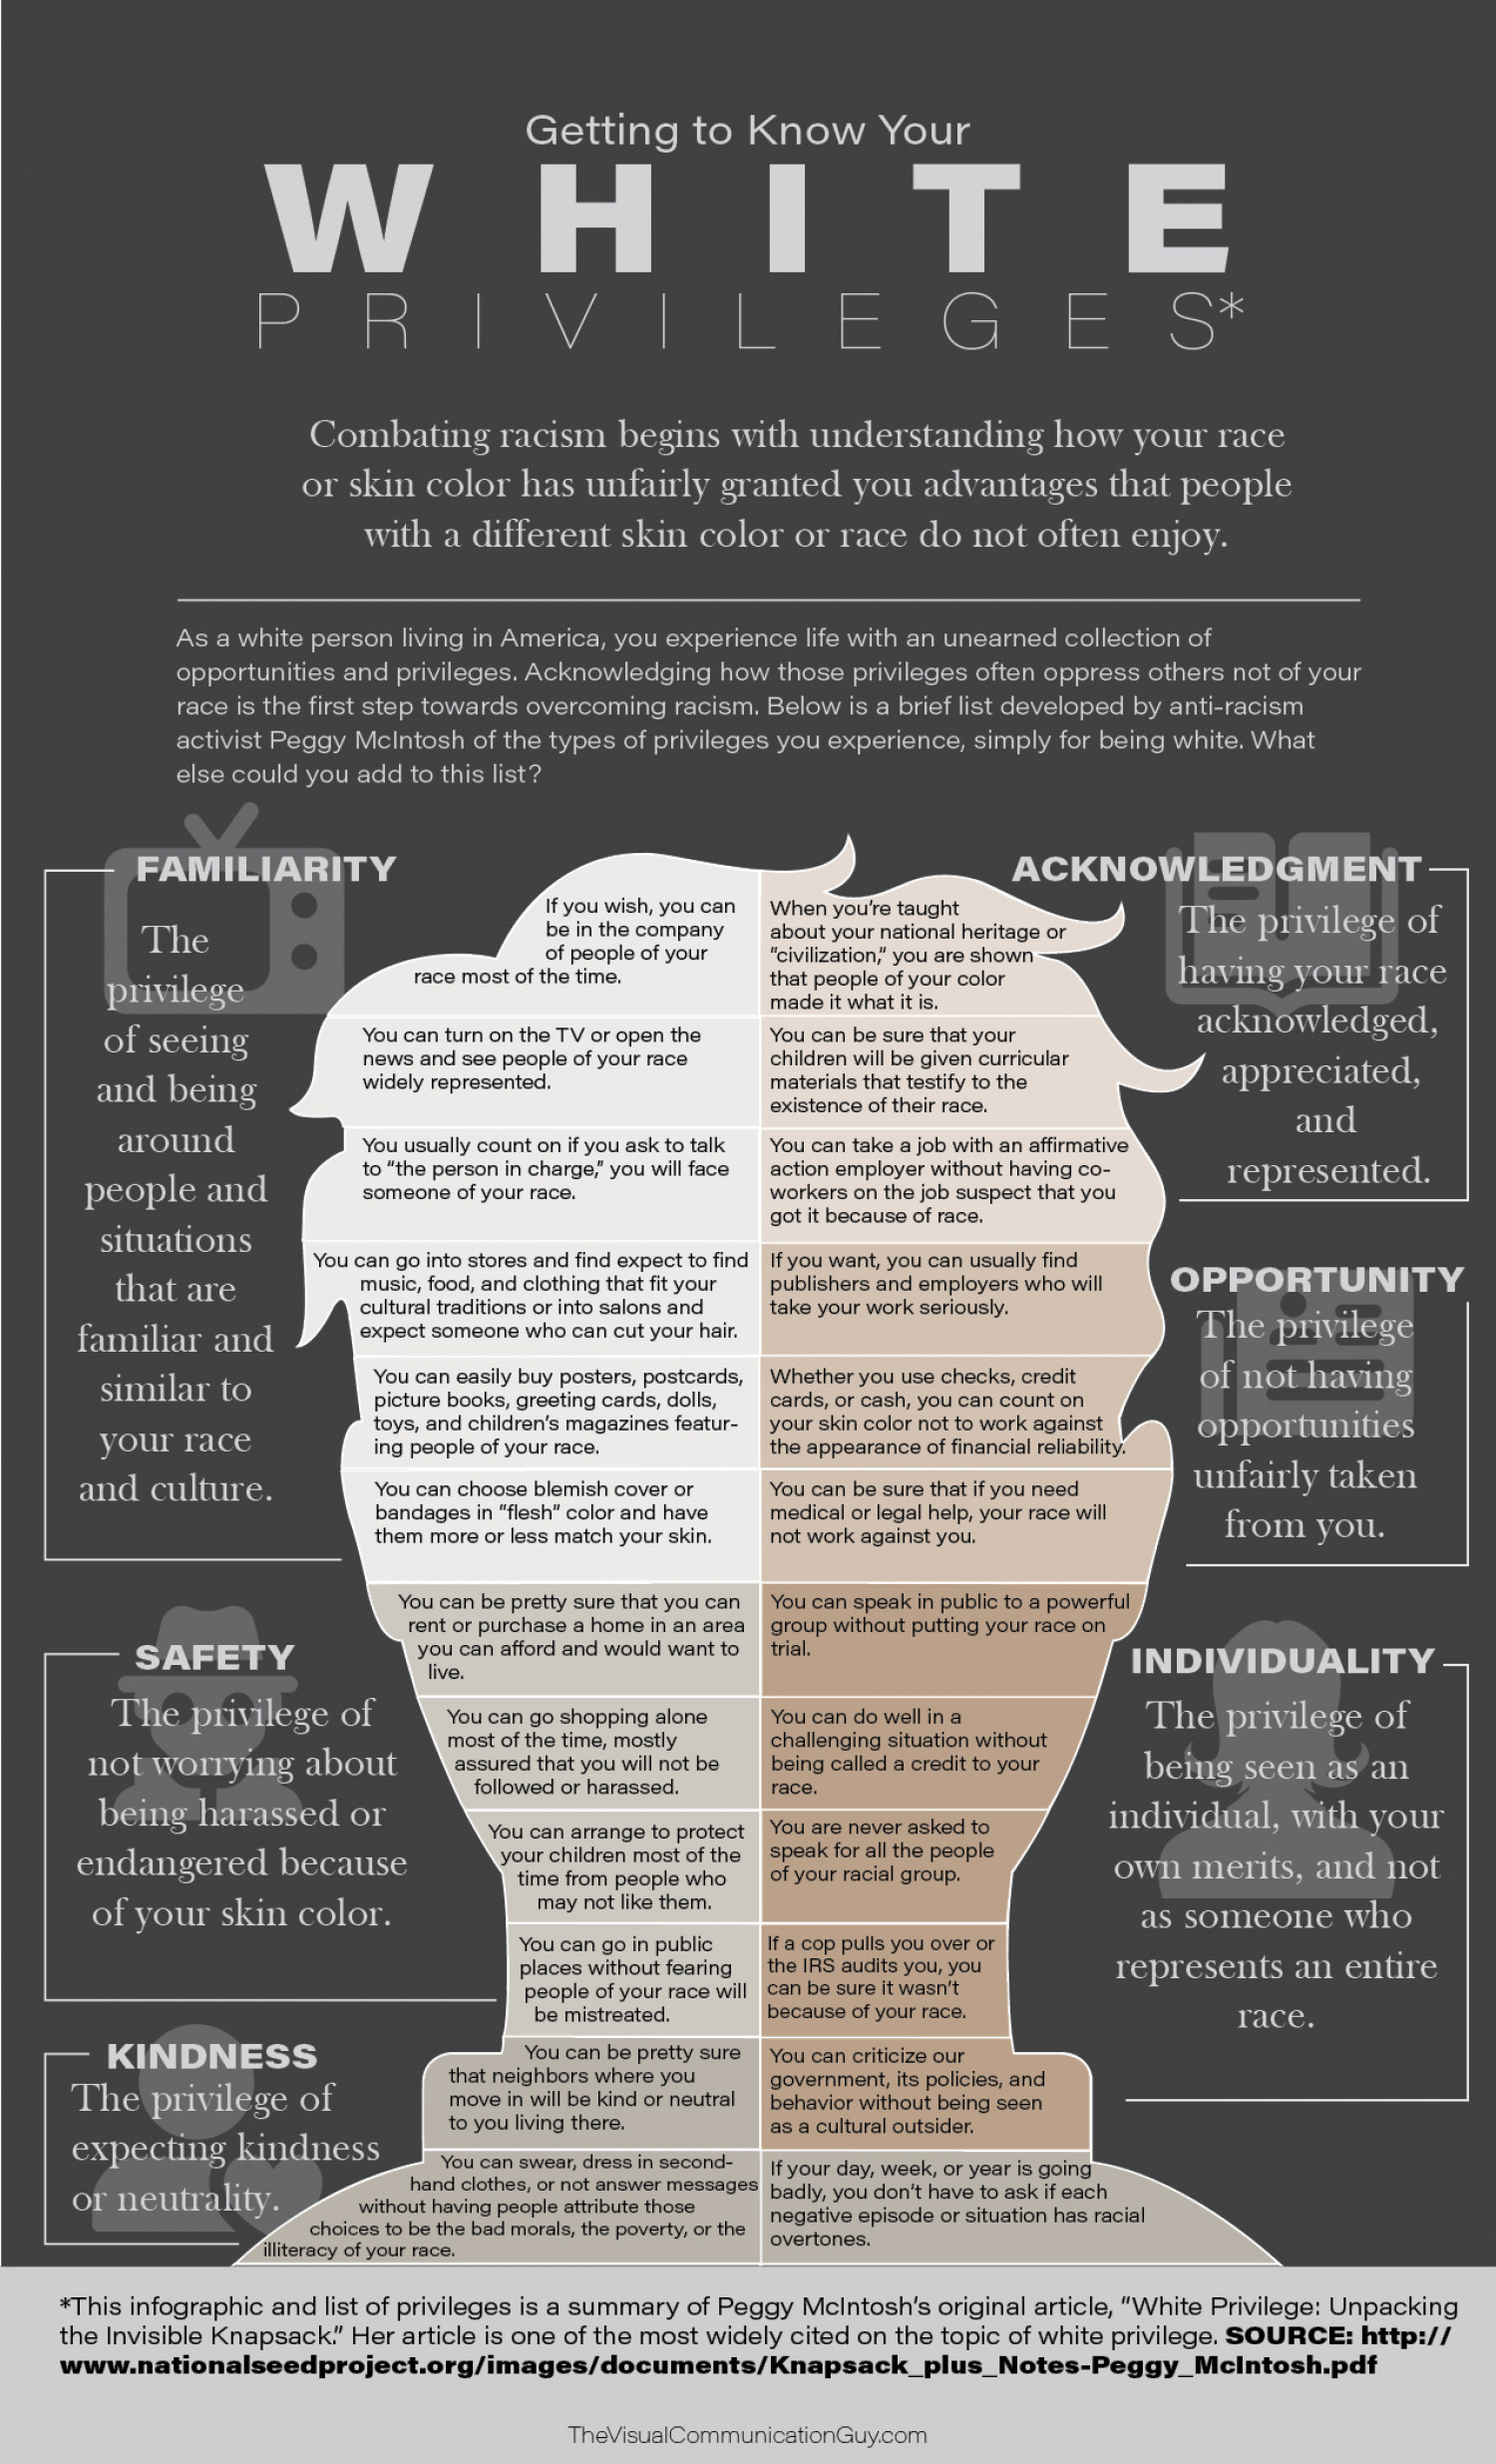 Getting to Know Your White Privileges Infographic